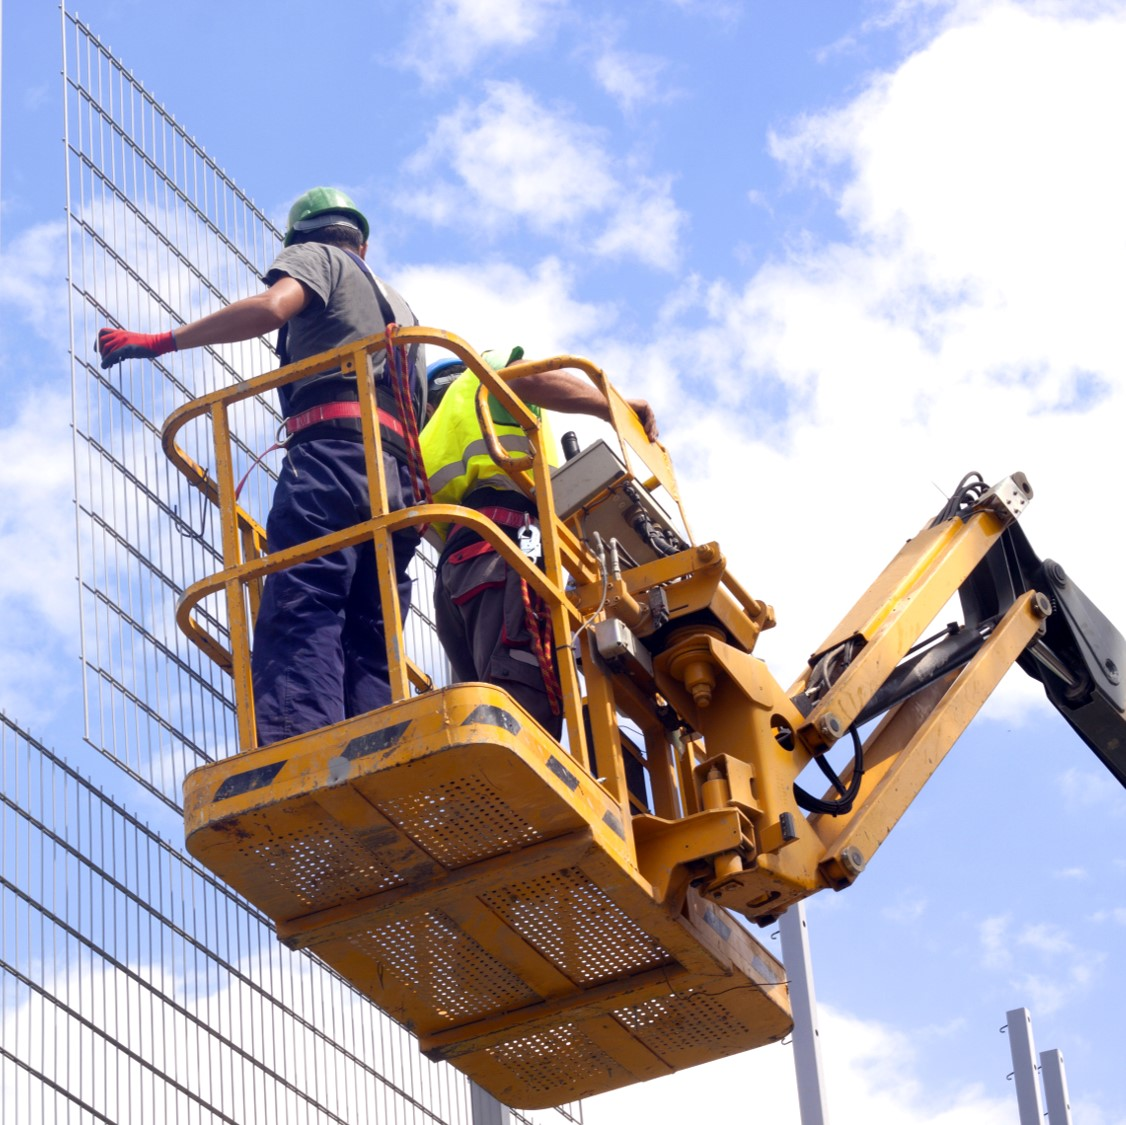 Aerial Lifts in Industrial and Construction Image